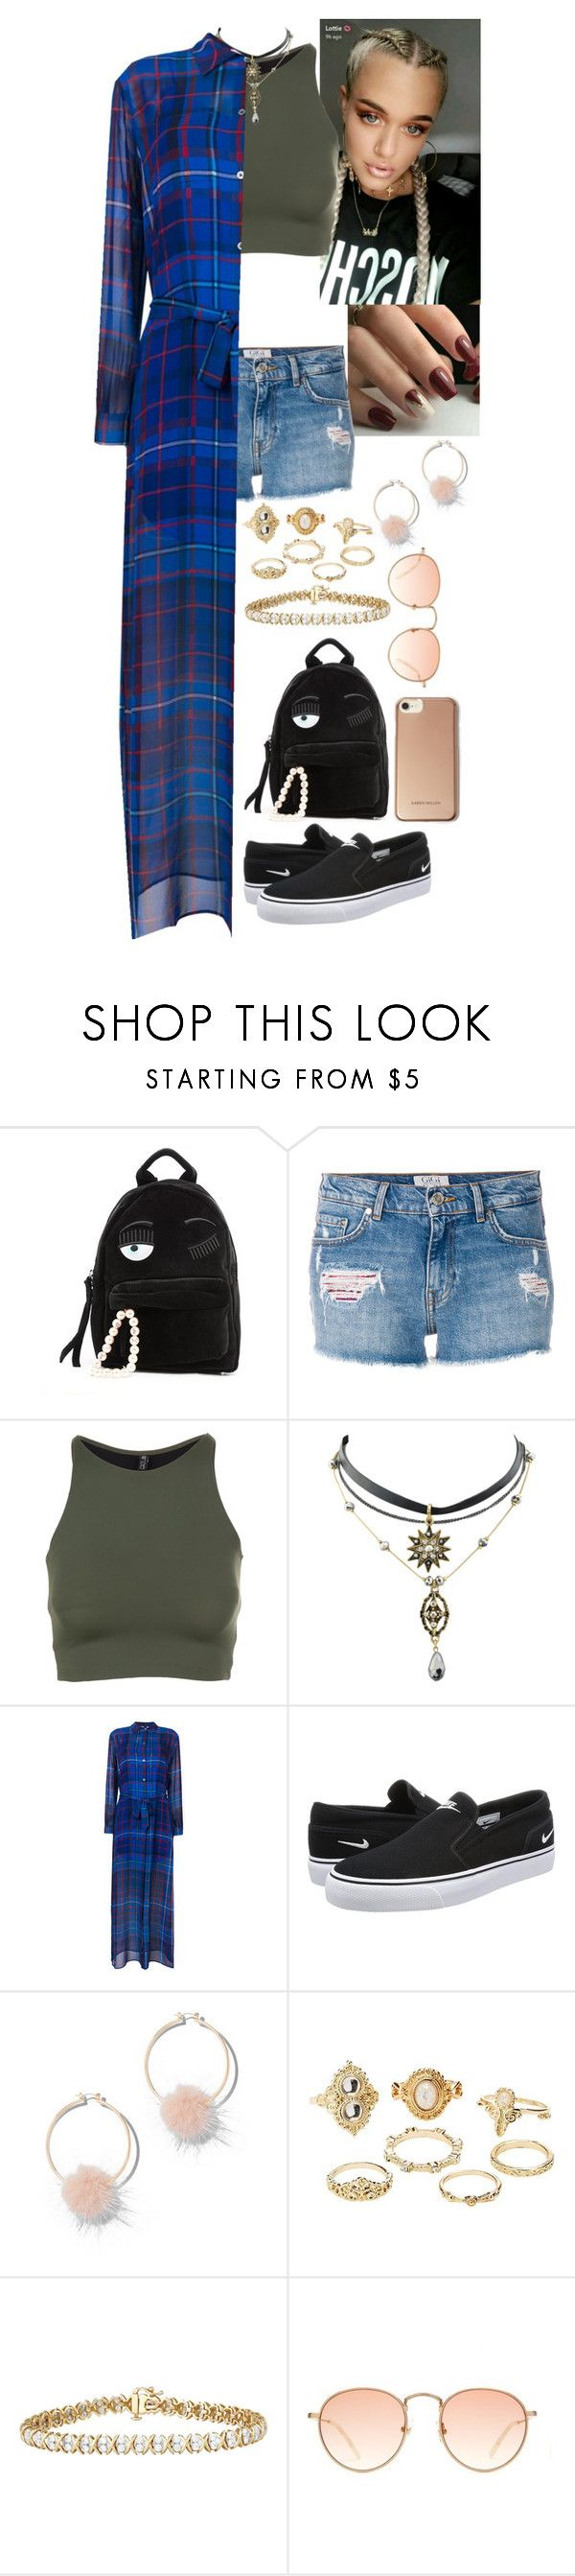 """""""Untitled #1203"""" by fatyhnrqz94 ❤ liked on Polyvore featuring Chiara Ferragni, Tommy Hilfiger, Onzie, NIKE, New York & Company, Charlotte Russe and Karen Millen"""